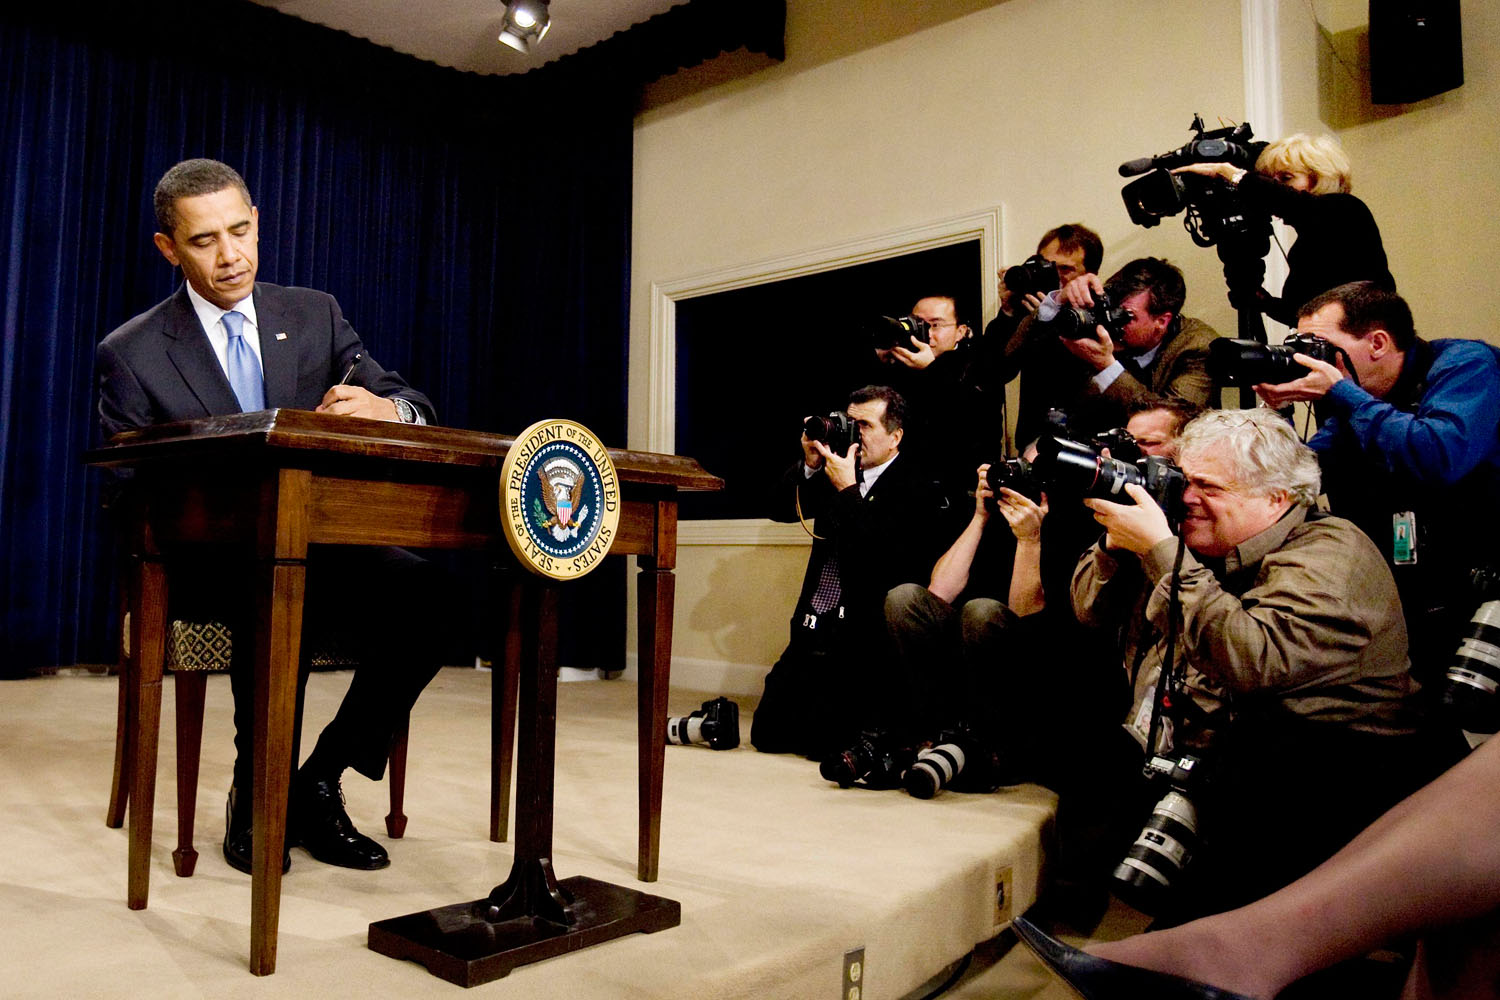 President Obama signs an executive order on Executive Branch ethics in the White House January 21, 2009.